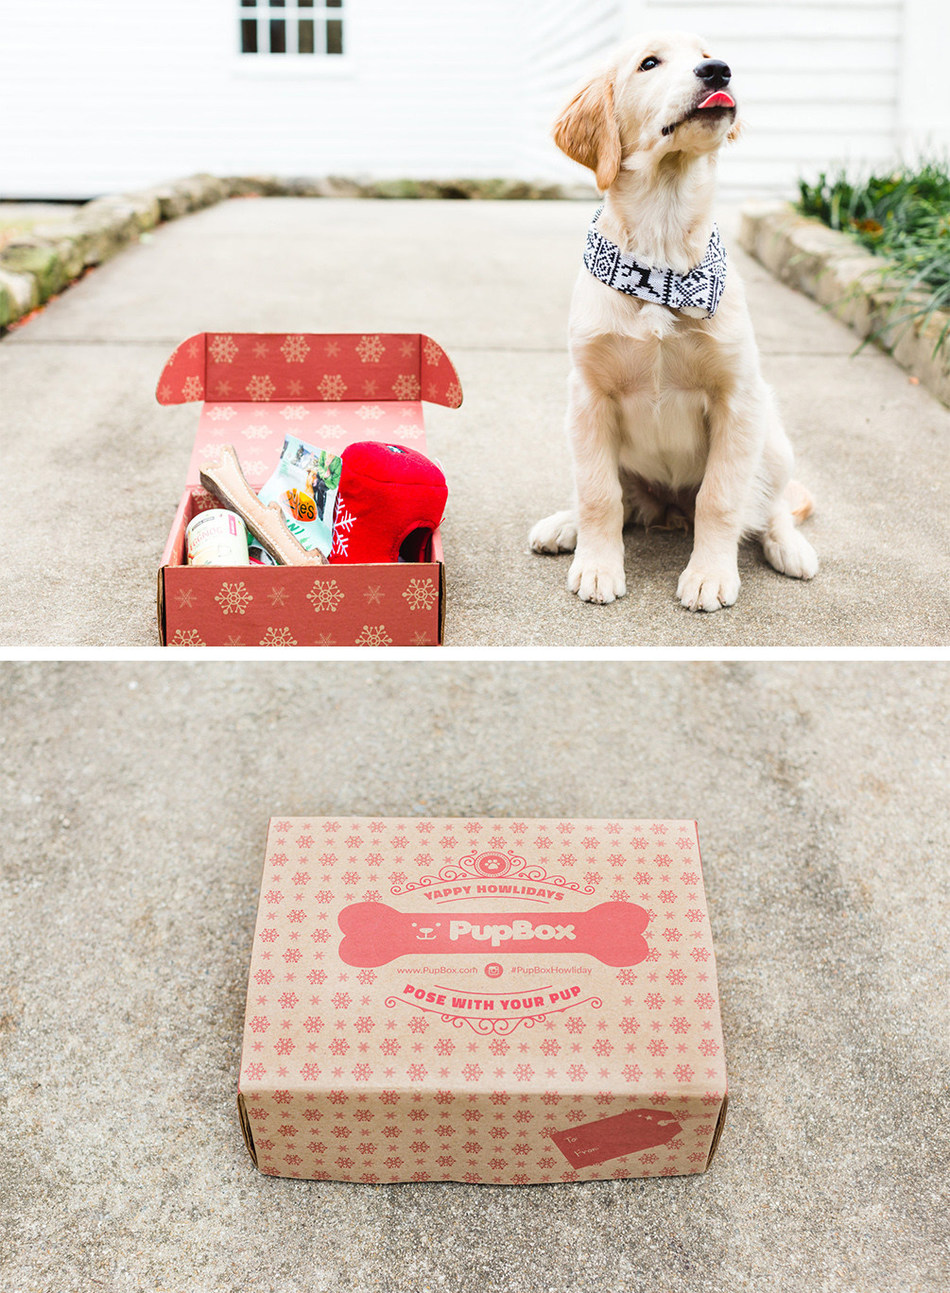 Petco and PupBox have launched the first-ever PupBox Holiday Box, a festive bundle of toys, treats and holiday training tips, perfect for any pup or pet parent on your list.